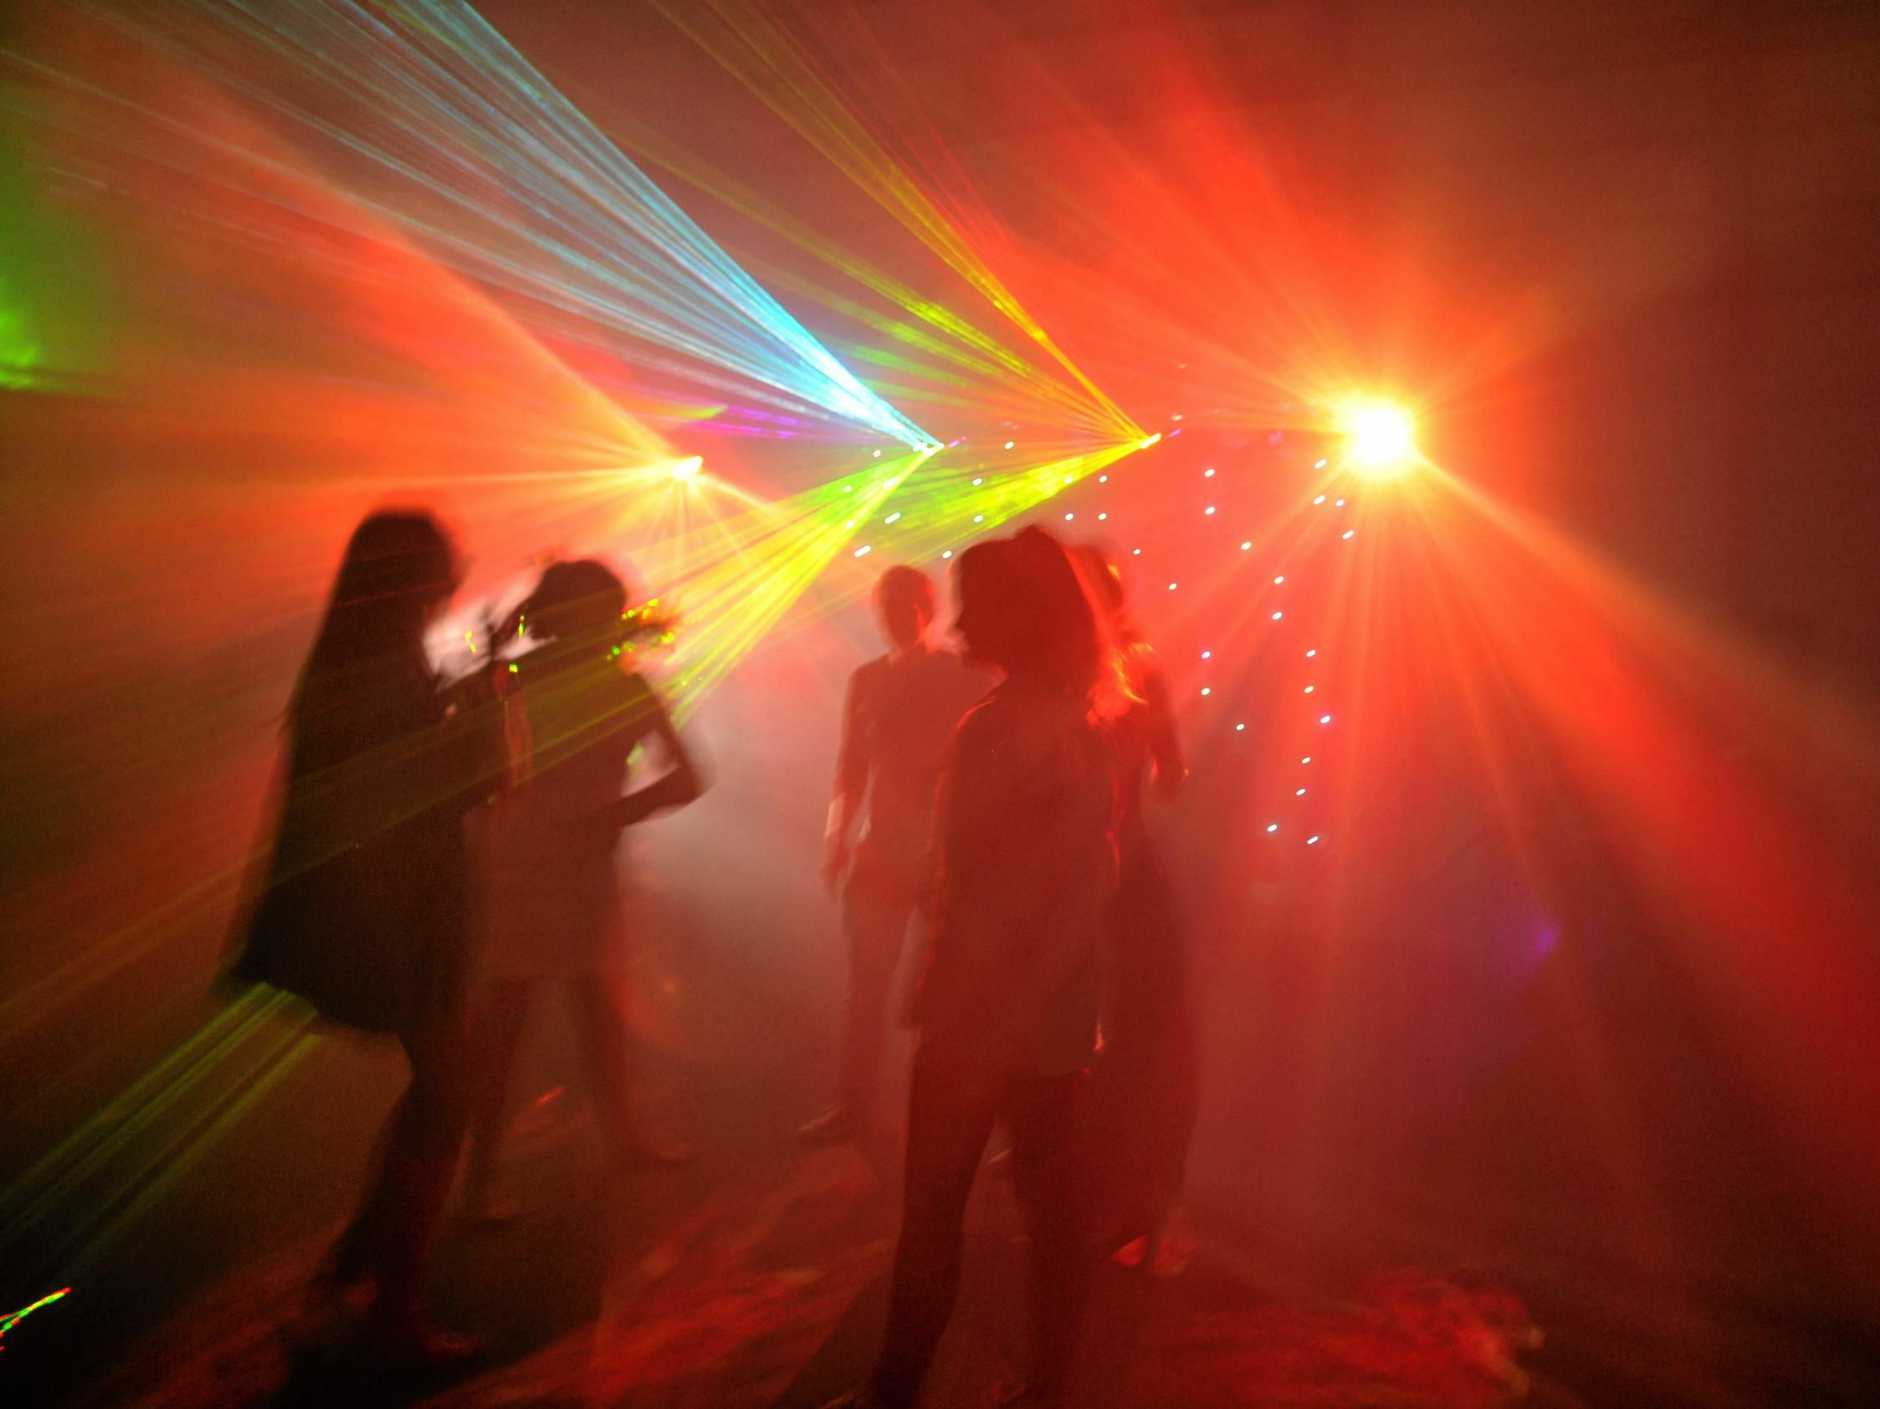 Disco fever returns with the Let's Dance Community's dance night on Saturday, October 21